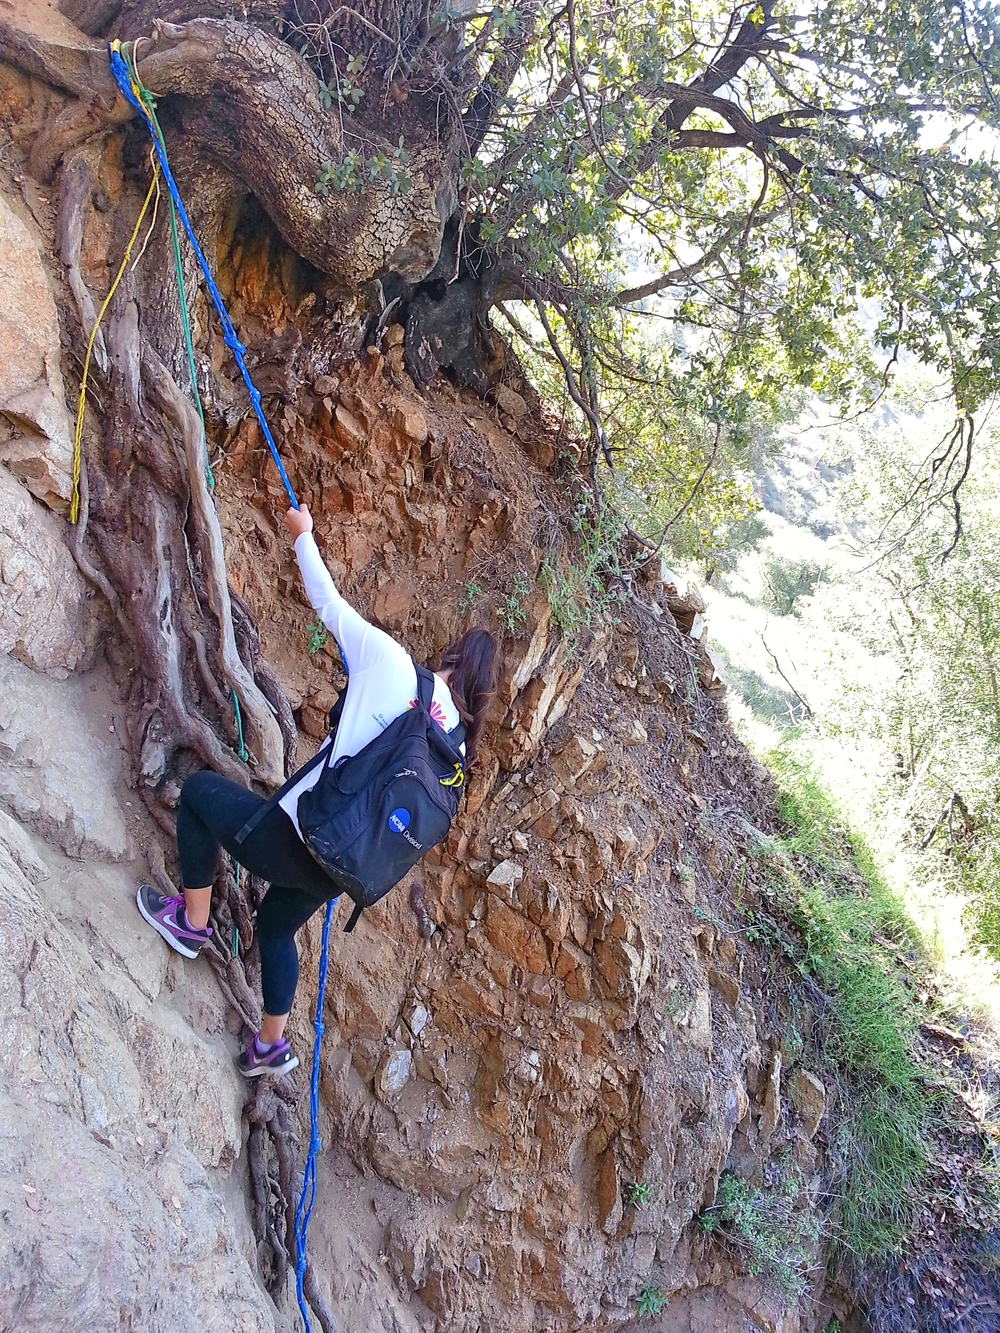 Elaine down-climbing a short steep rock section